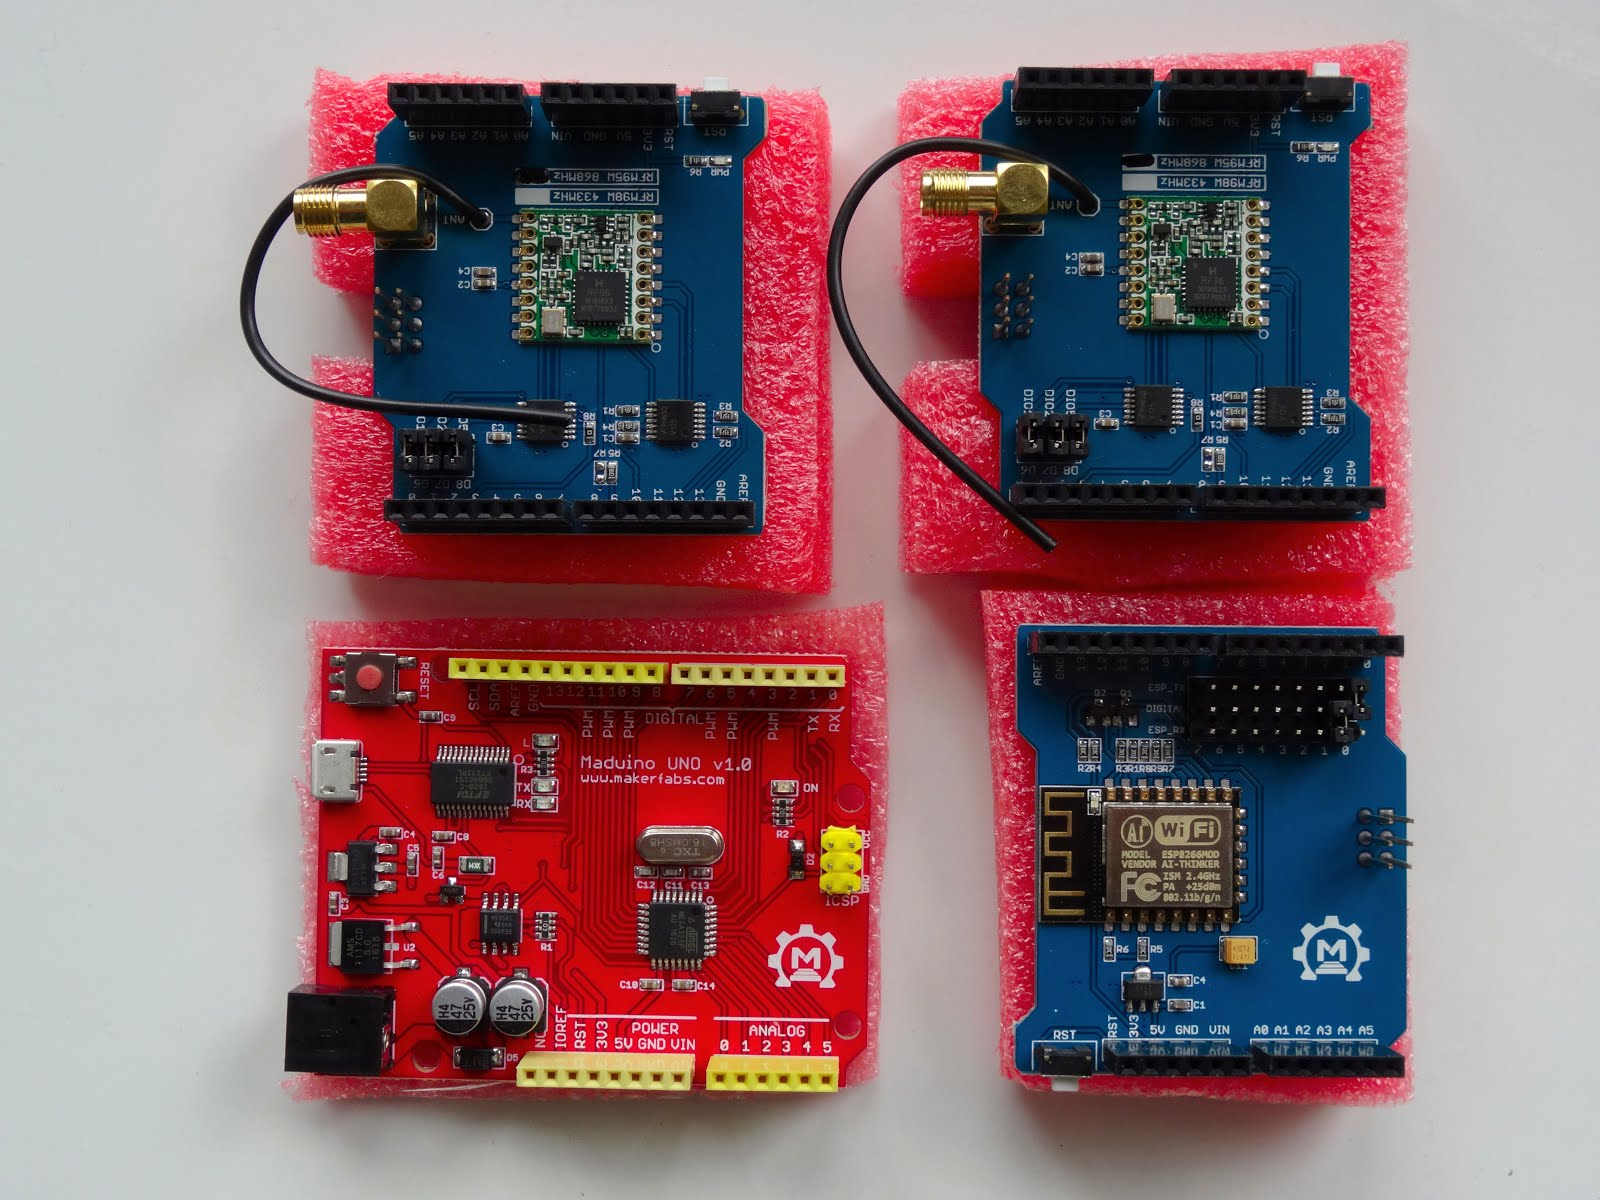 Mitov Software Just Received A Maduino Esp8266 Wifi Shield And 2 Circuit Prototyping As You Can See From The Pictures Modules Are Of Exceptionally Good Quality This Matches My Experience With Arduino Gps Previously Donated